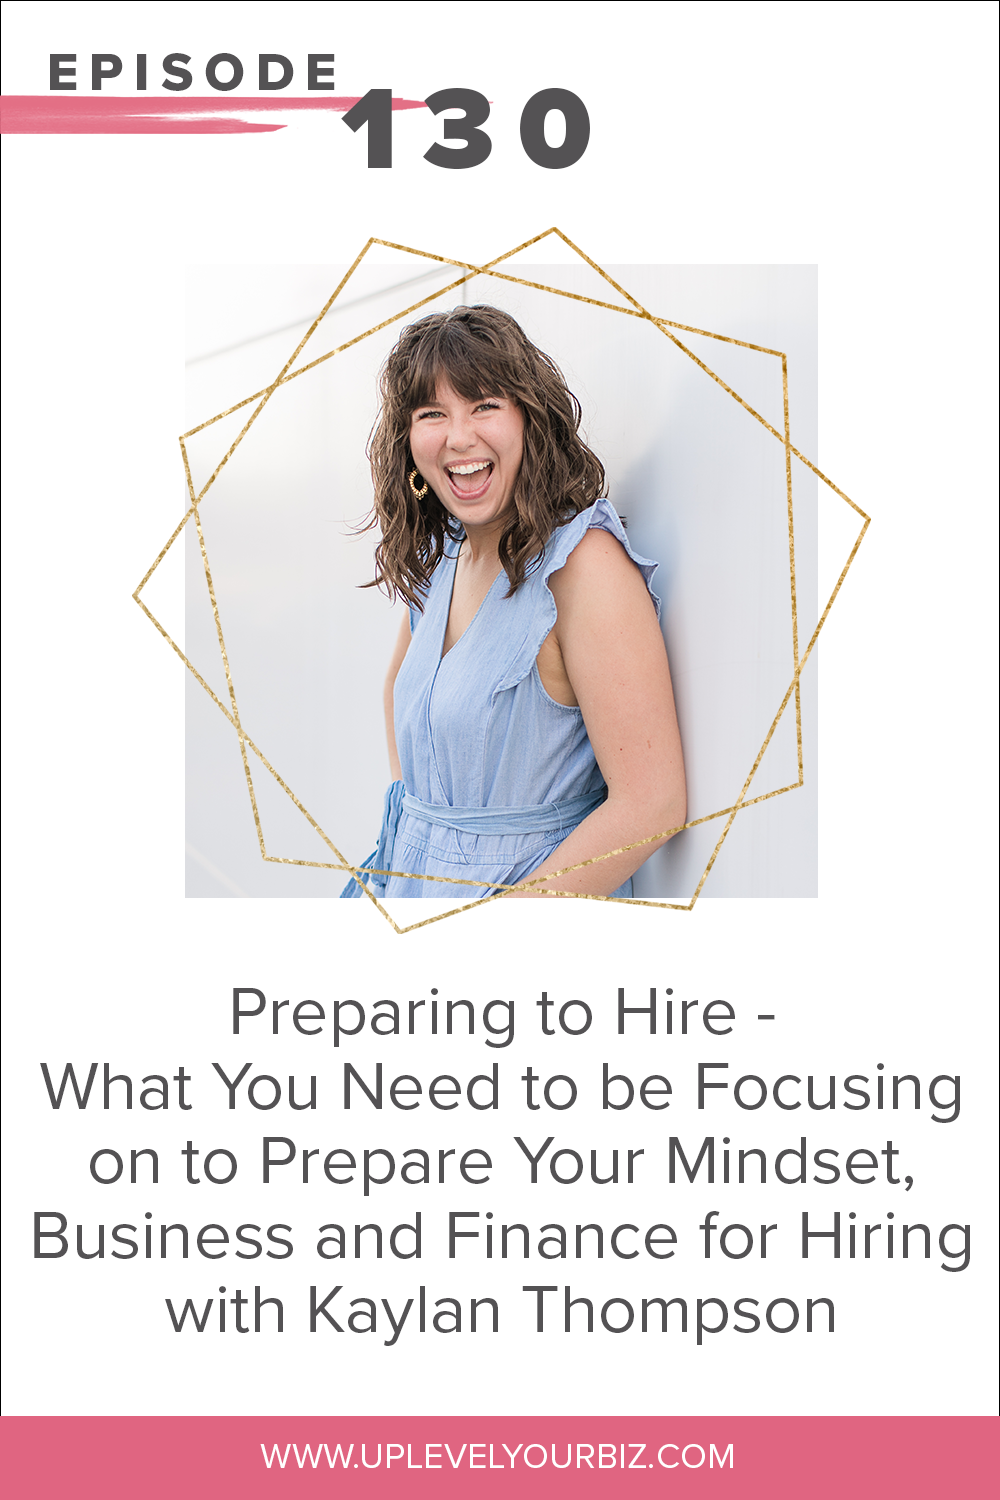 Episode #130 | Preparing to Hire - What You Need to be Focusing on to Prepare Your Mindset, Business and Finances for Hiring with Kaylan Thompson